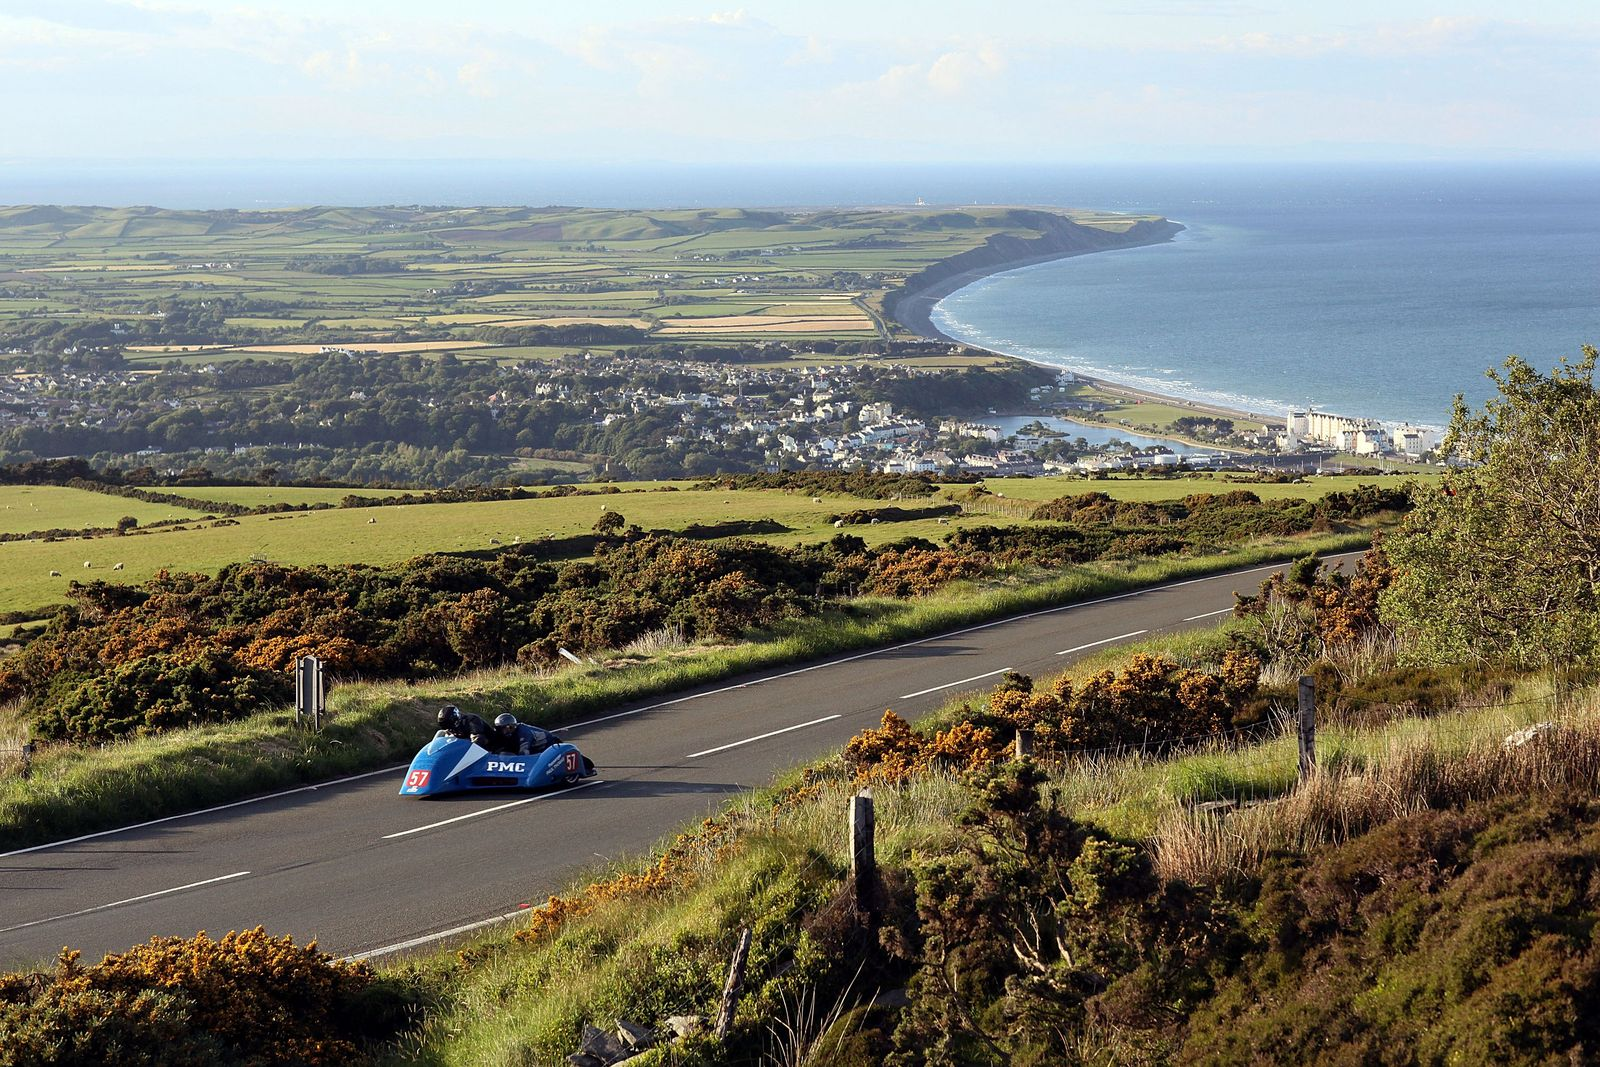 Enthusiasts Gather From Around The World To Enjoy The TT Races